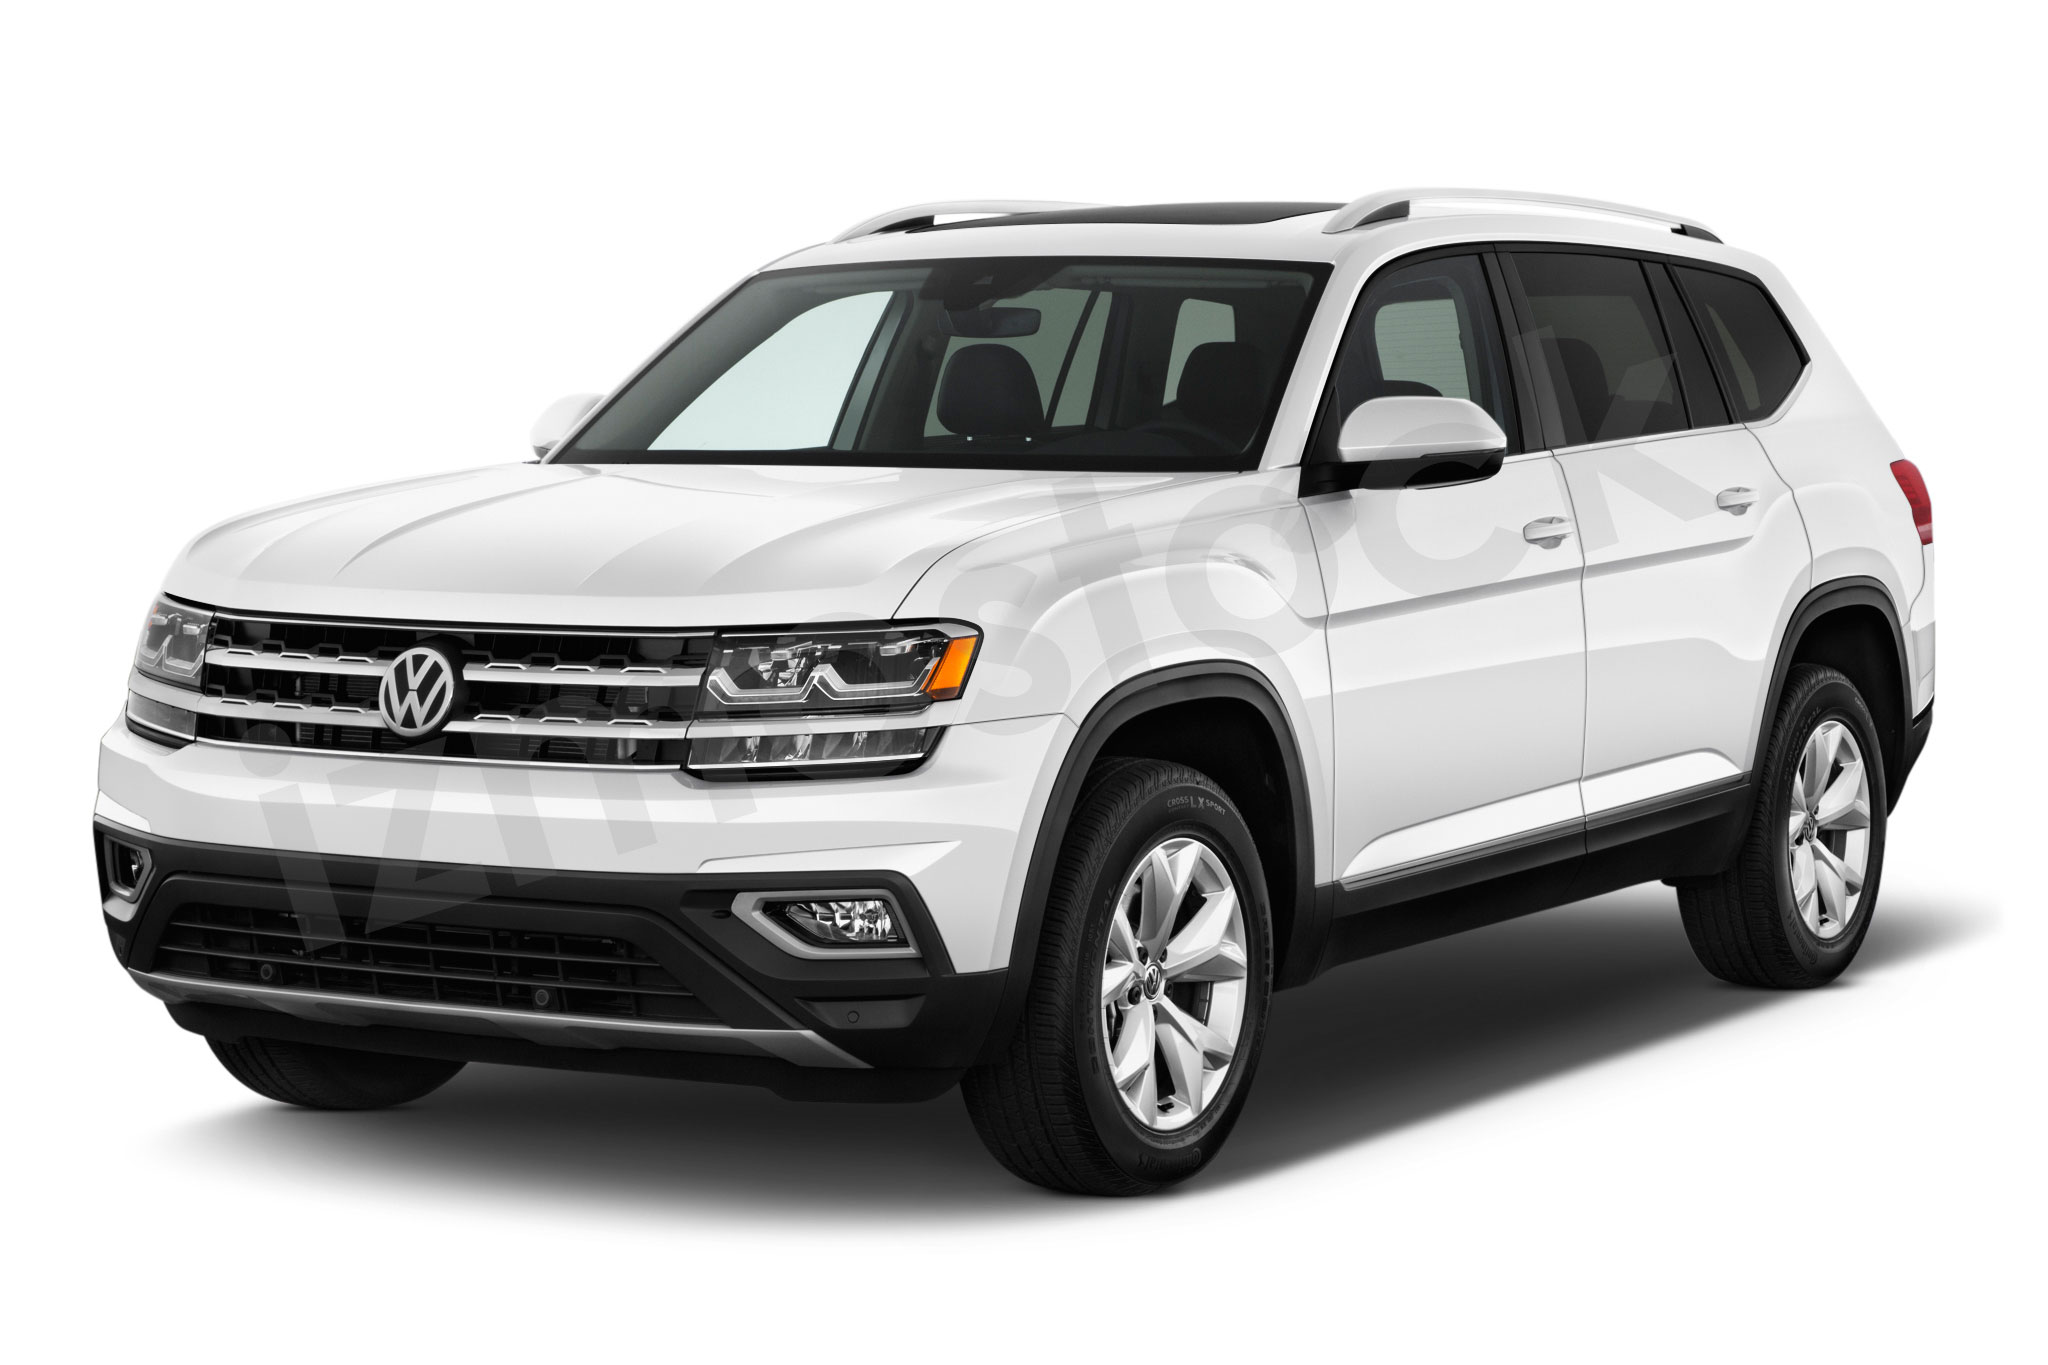 2018 Vw Atlas Review Images Price Interior And Specs